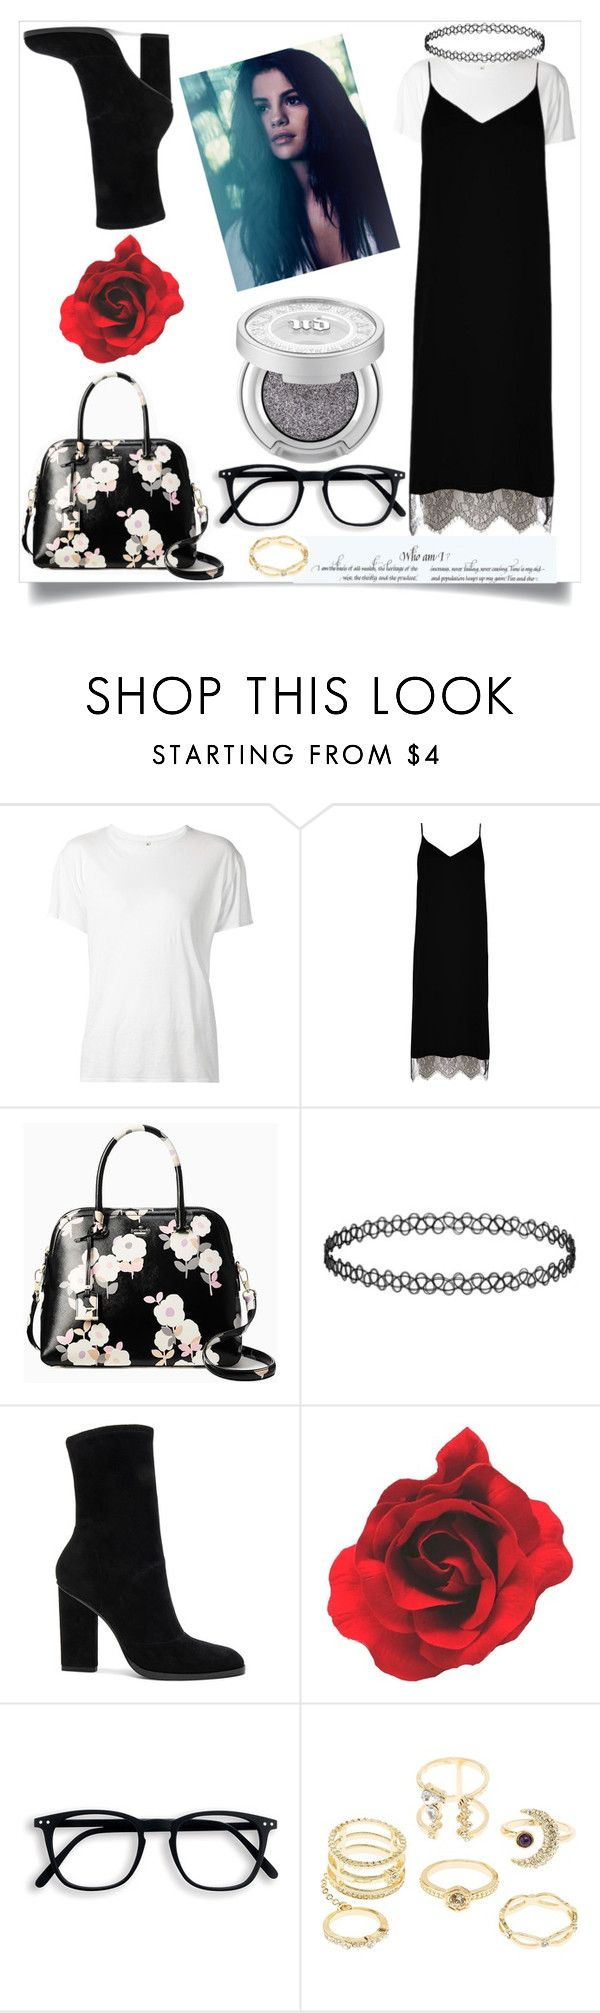 """""""Untitled #227"""" by voicu-ana ❤ liked on Polyvore featuring R13, River Island, Kate Spade, Alexander Wang and Charlotte Russe"""